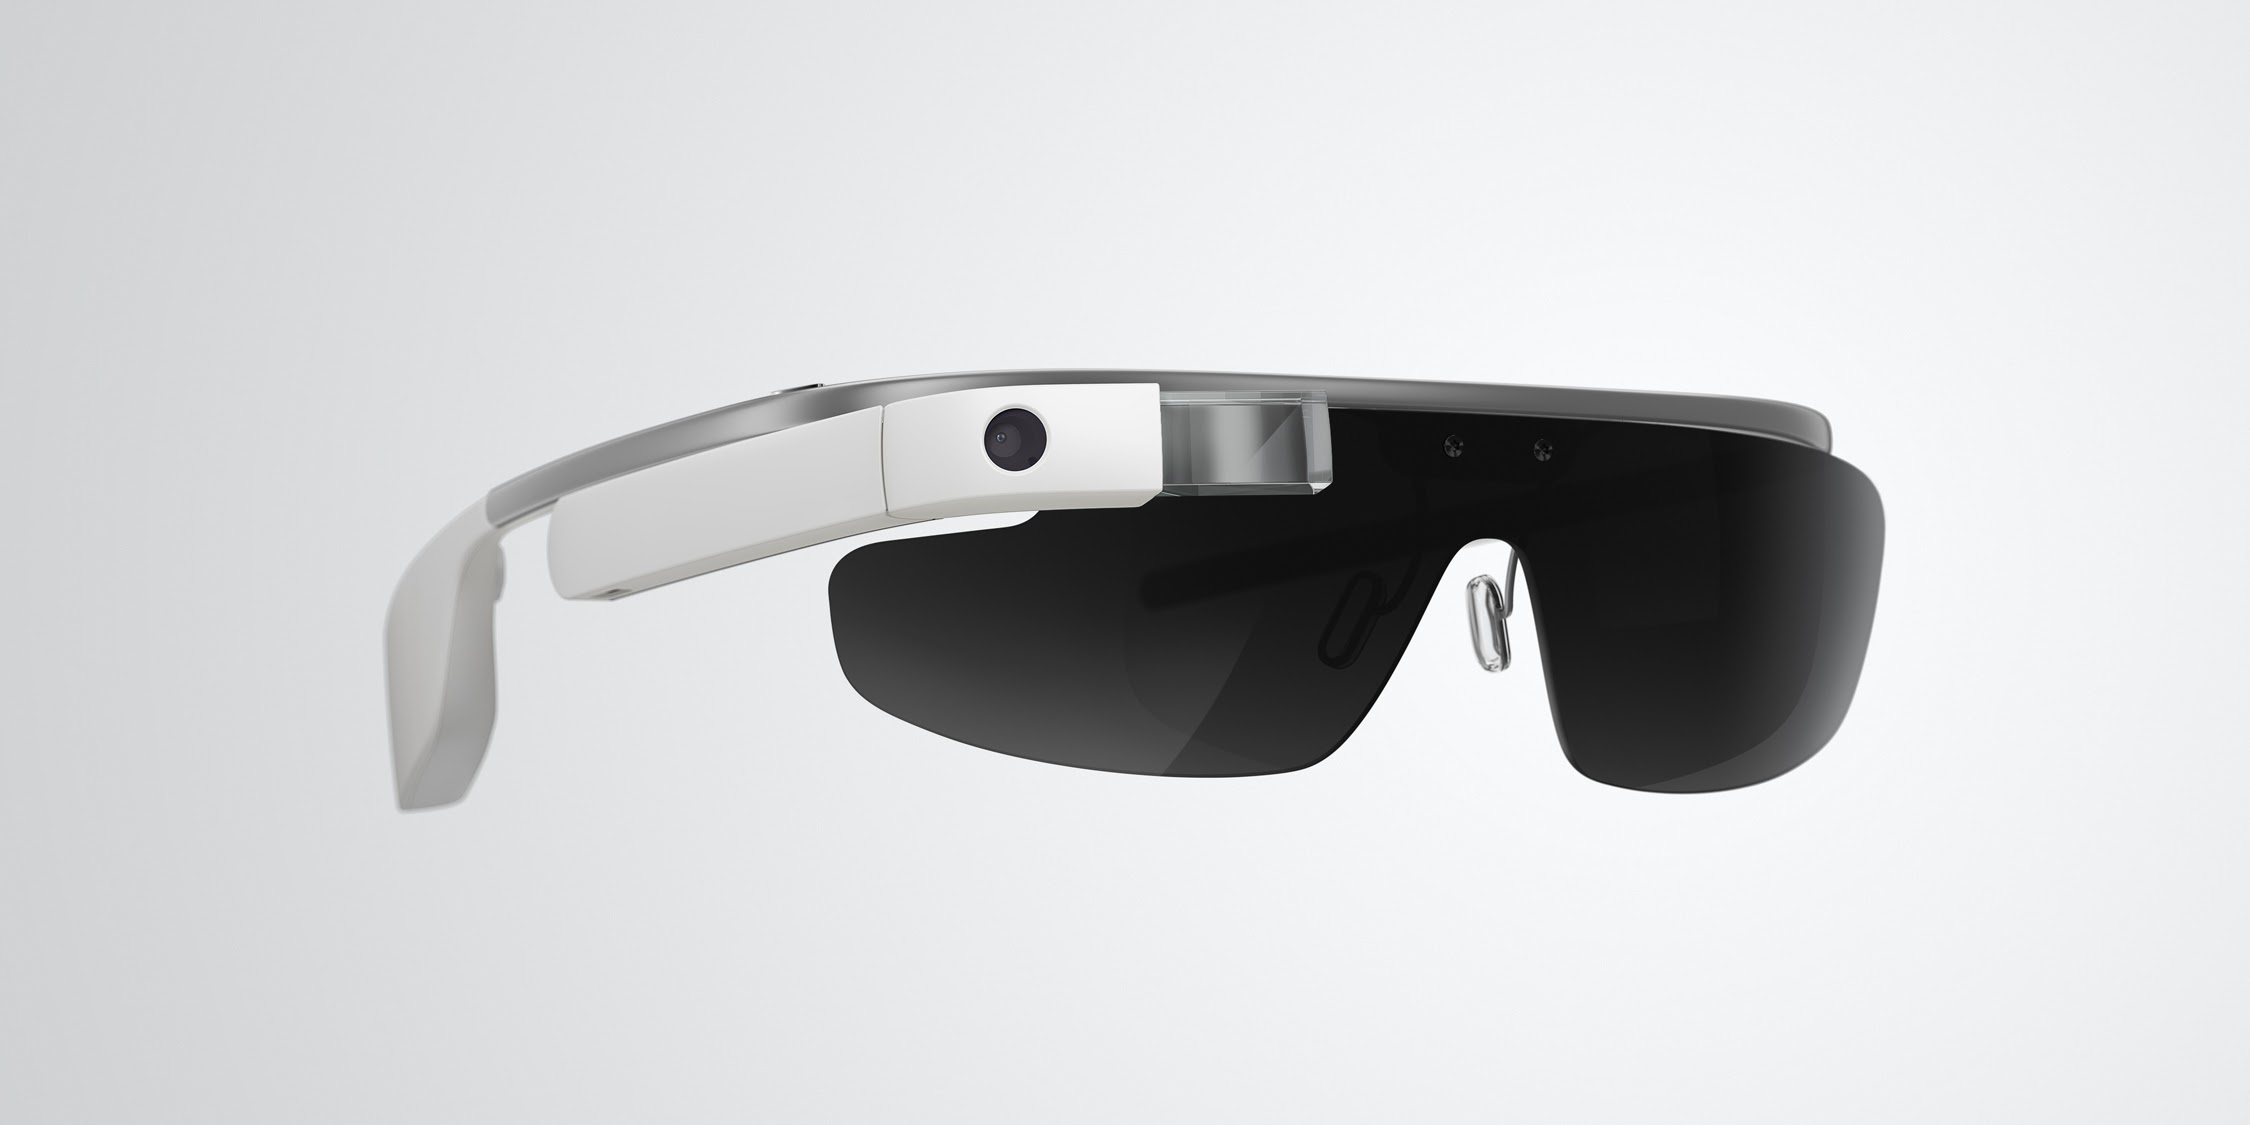 glass8 Google Glass can now be used with regular glasses after Google introduces $225 frames